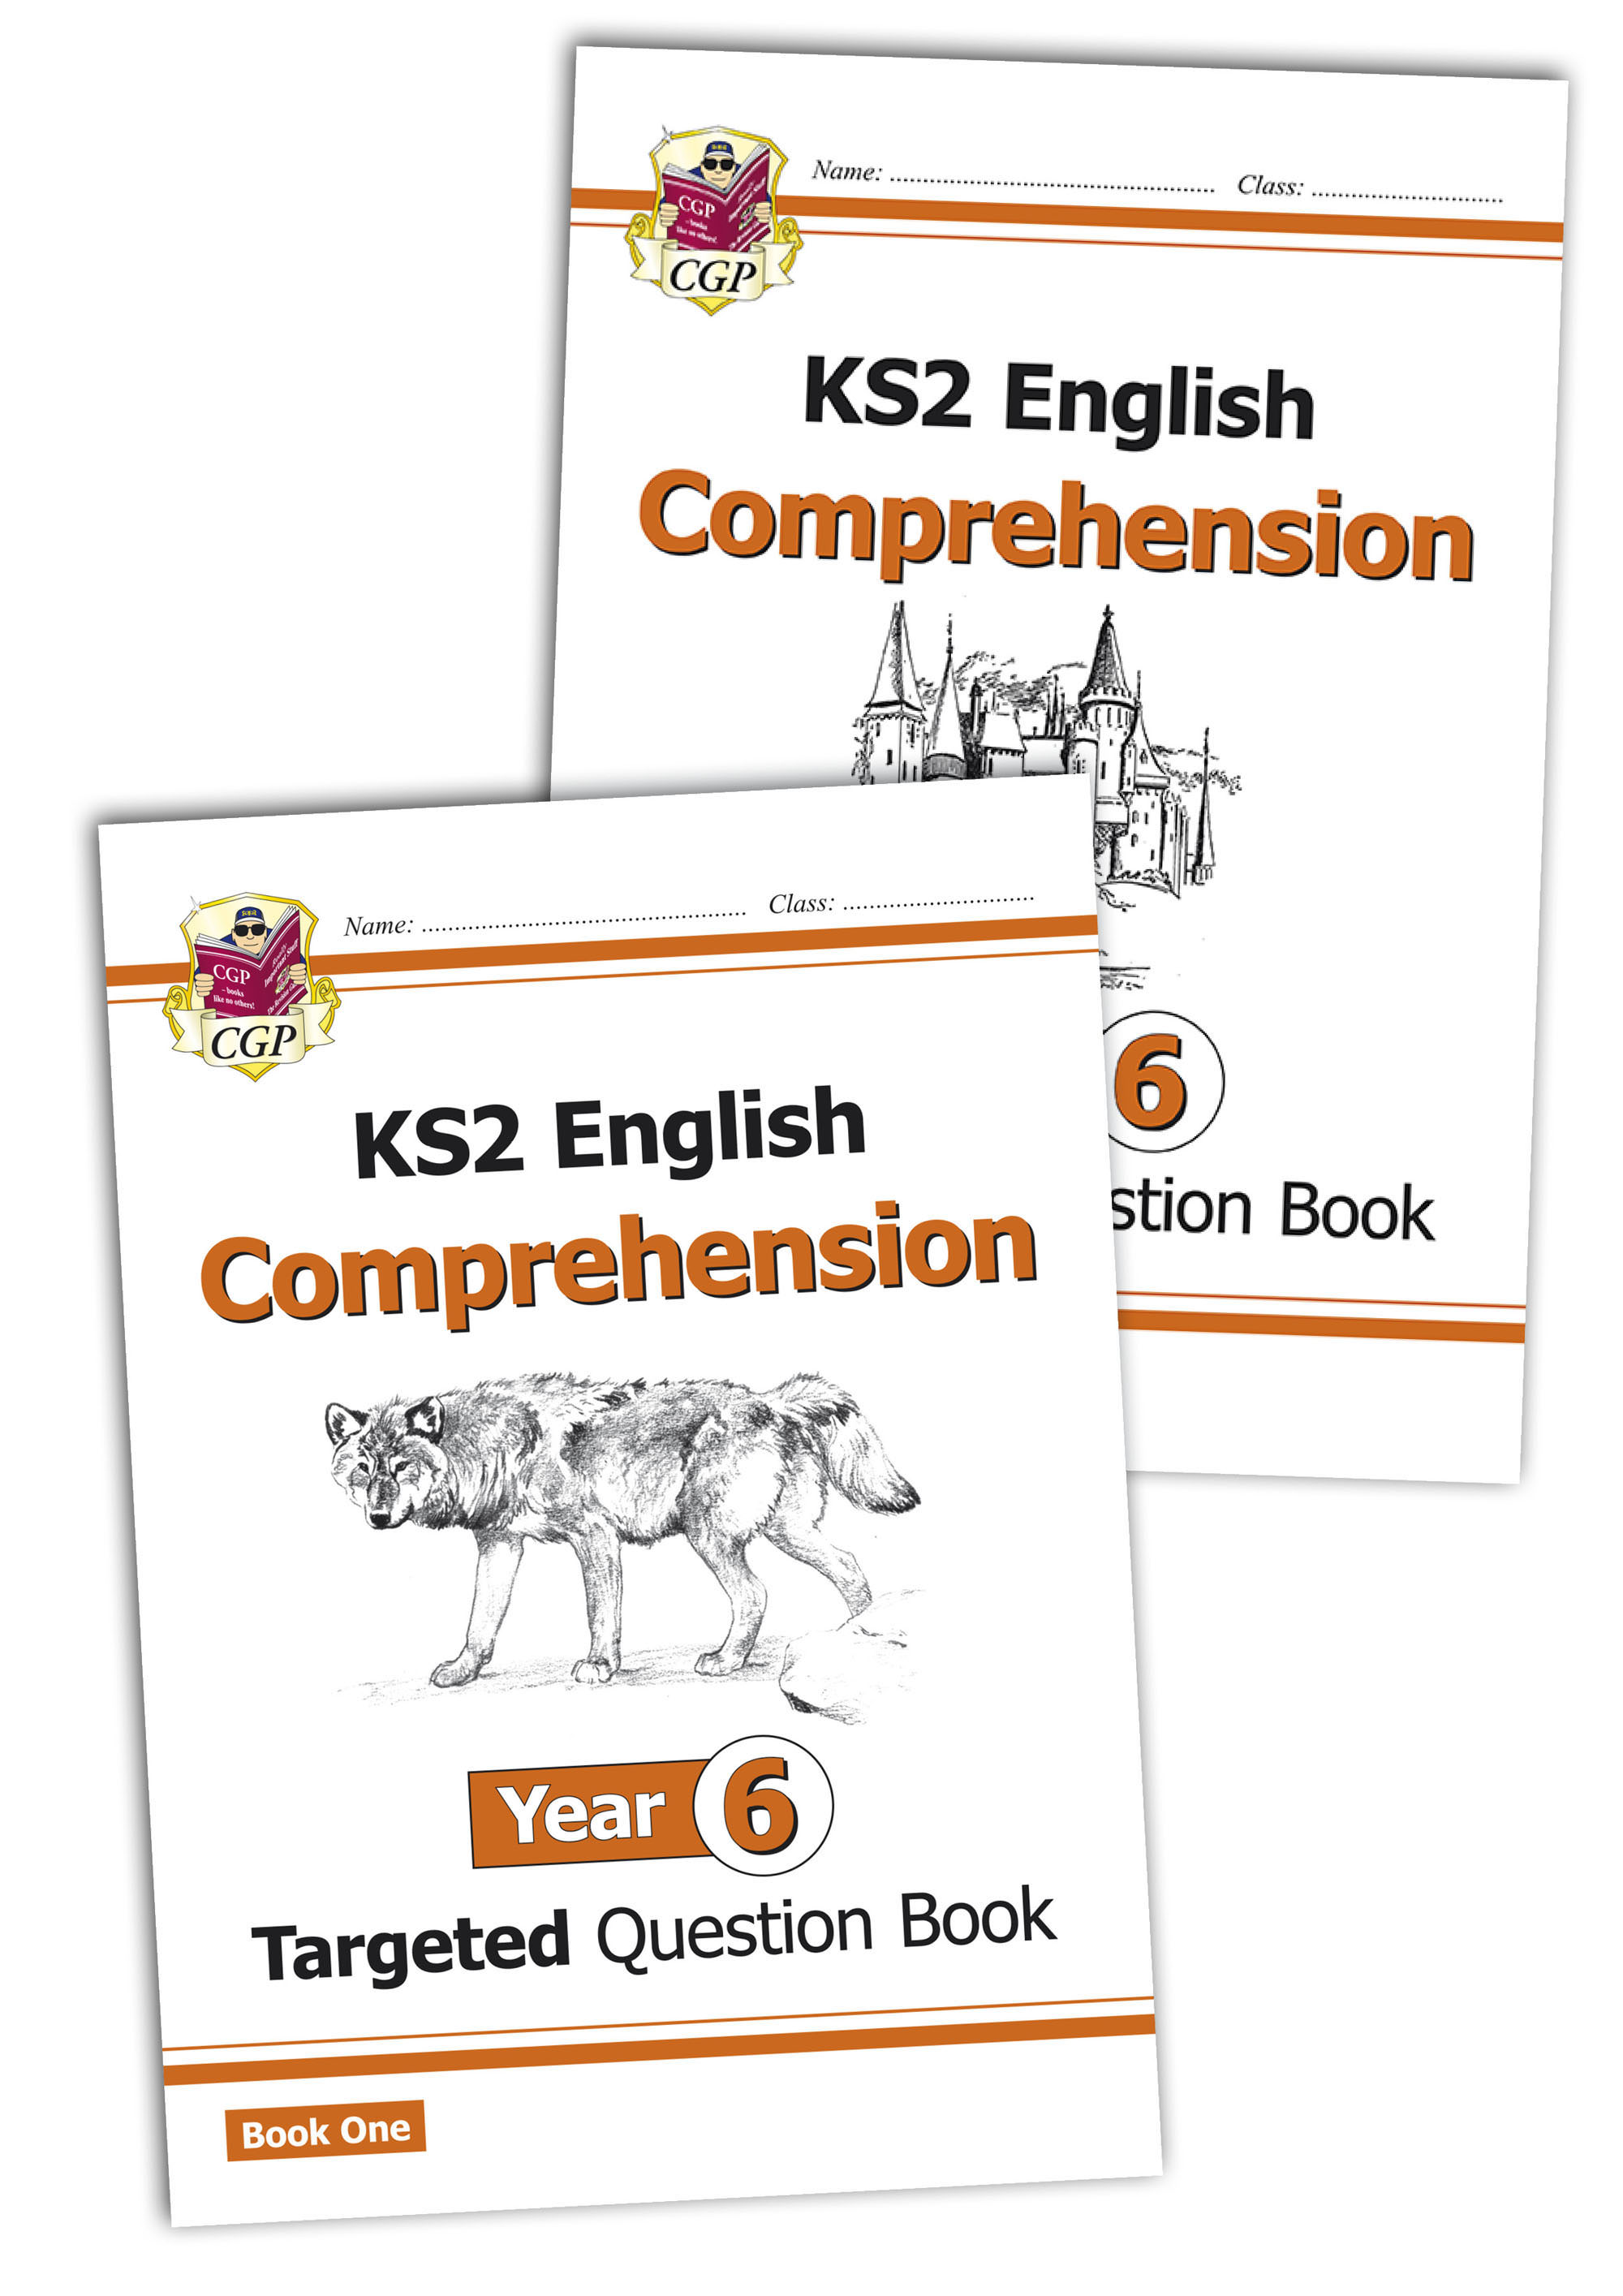 E6CWB21 - New KS2 English Targeted Question Book: Year 6 Comprehension - Book 1 & 2 Bundle